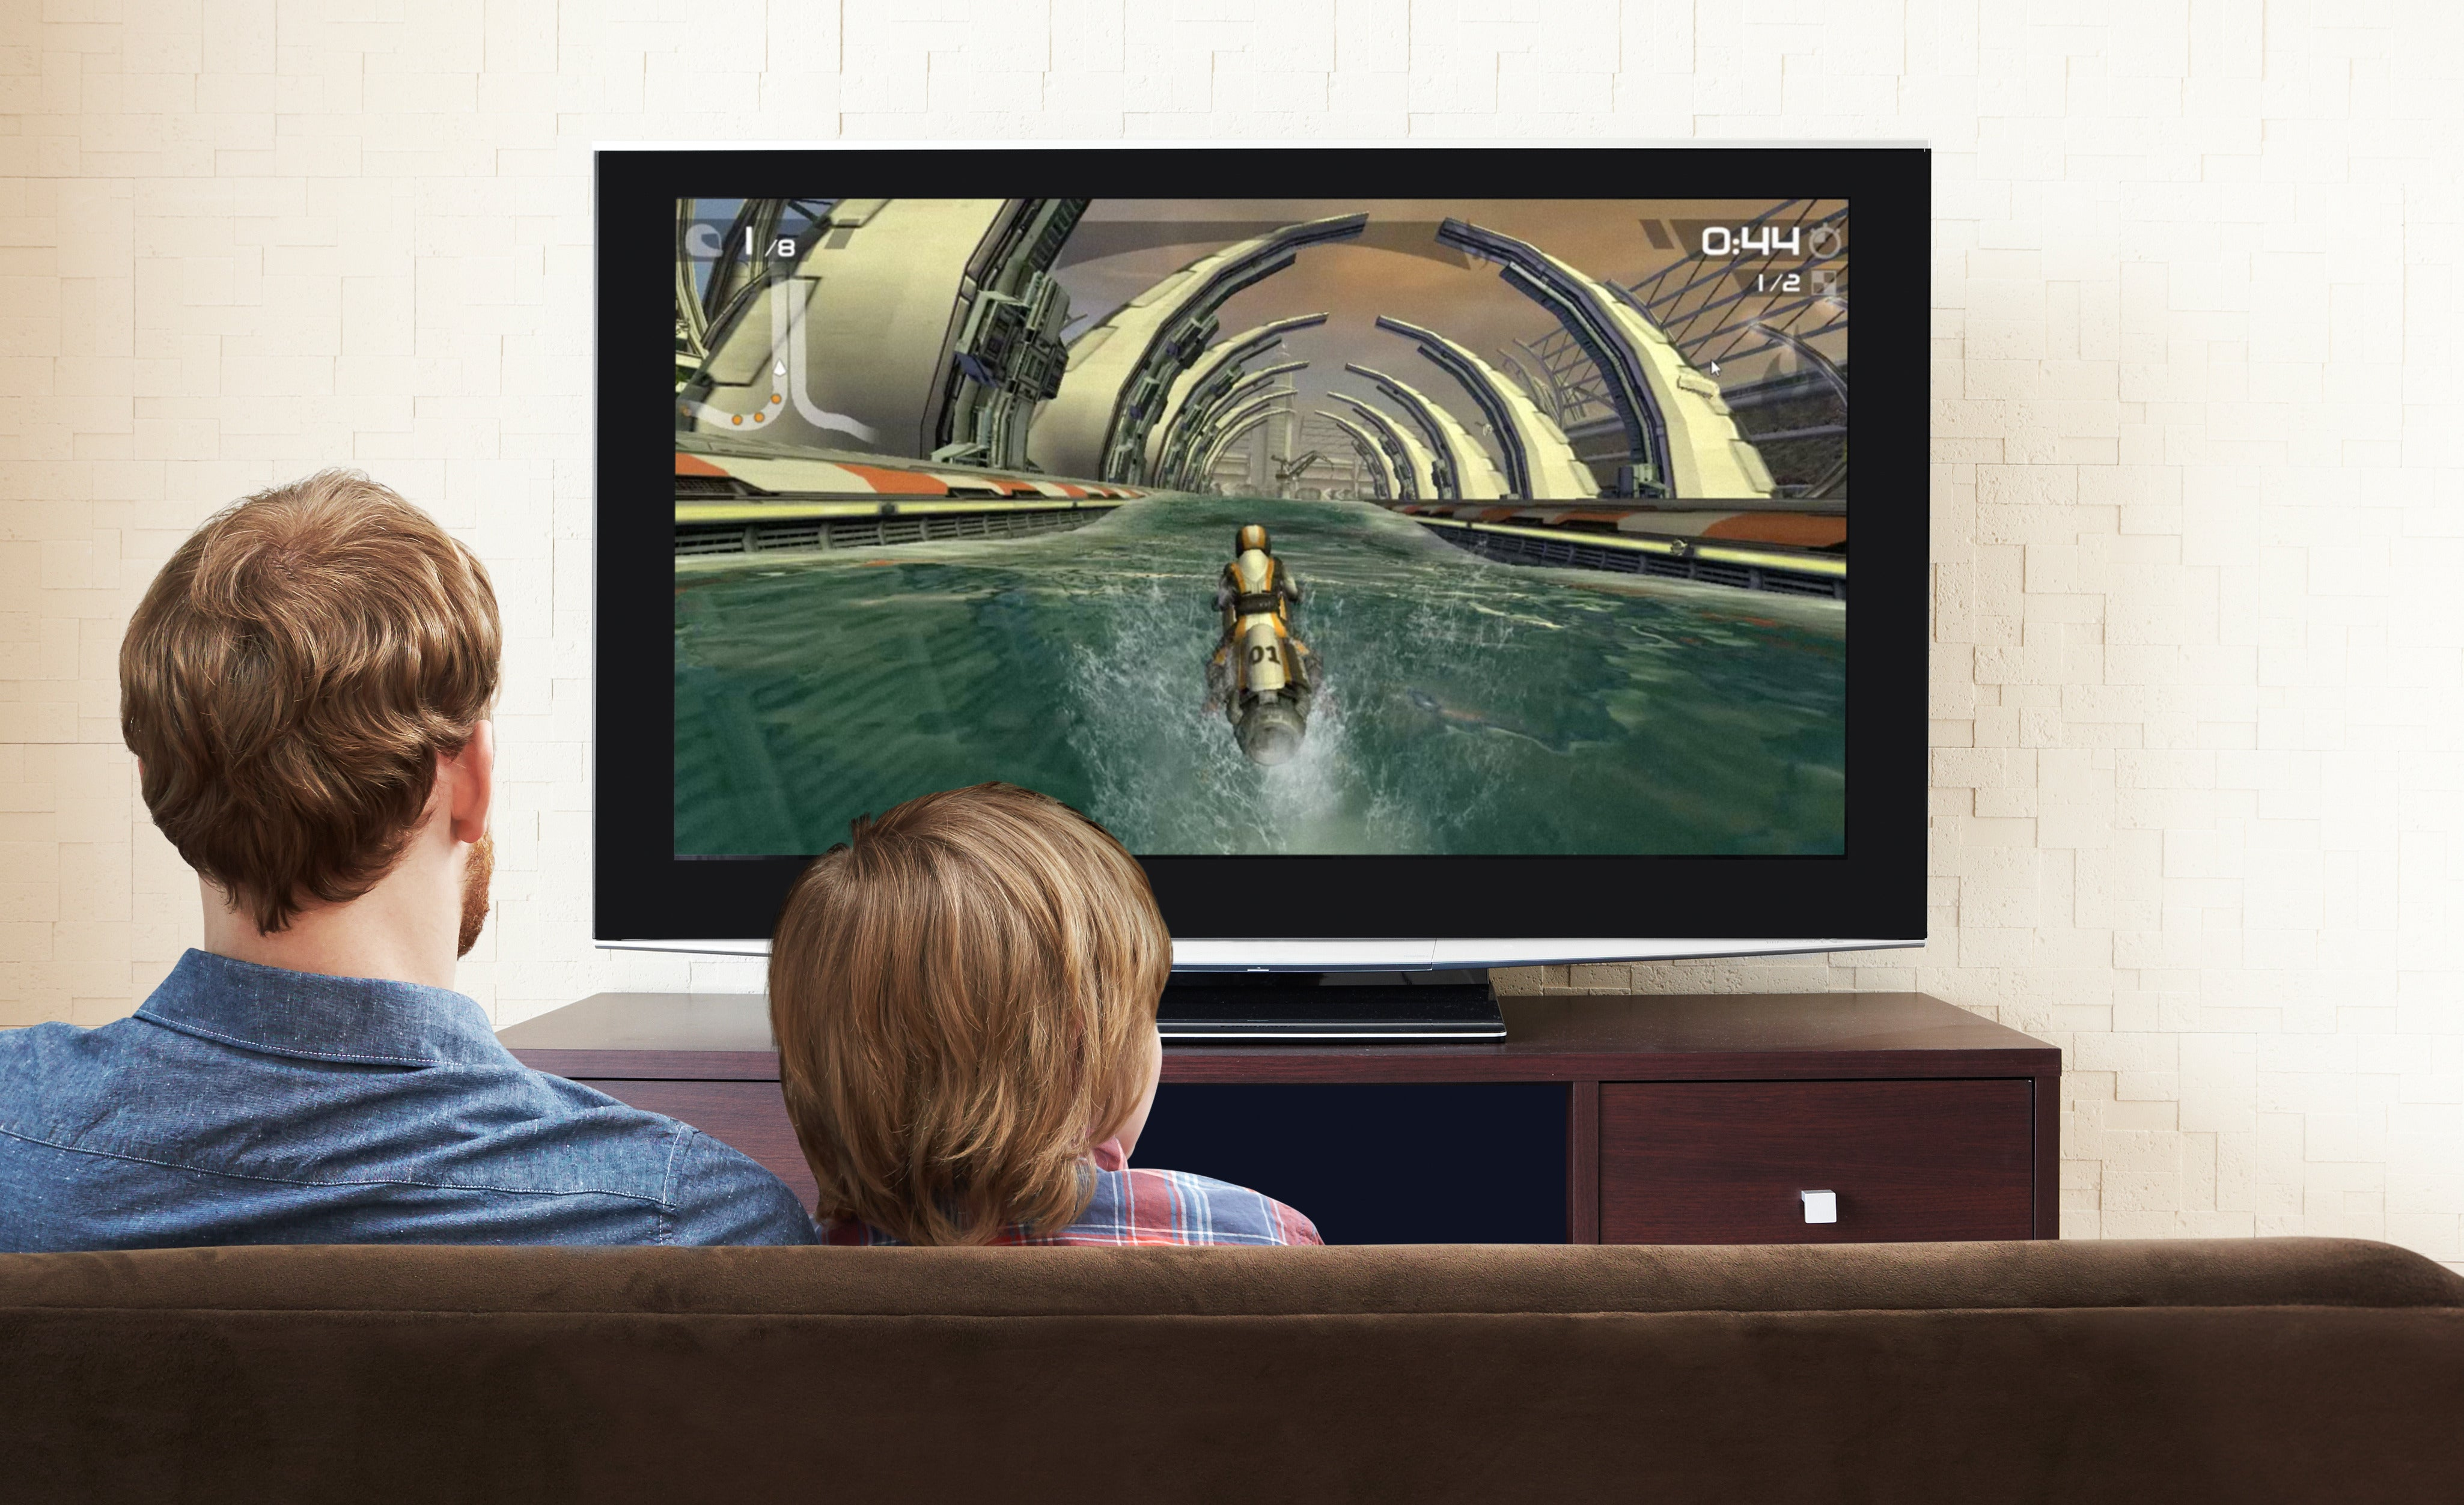 What the next Apple TV needs to succeed | Macworld